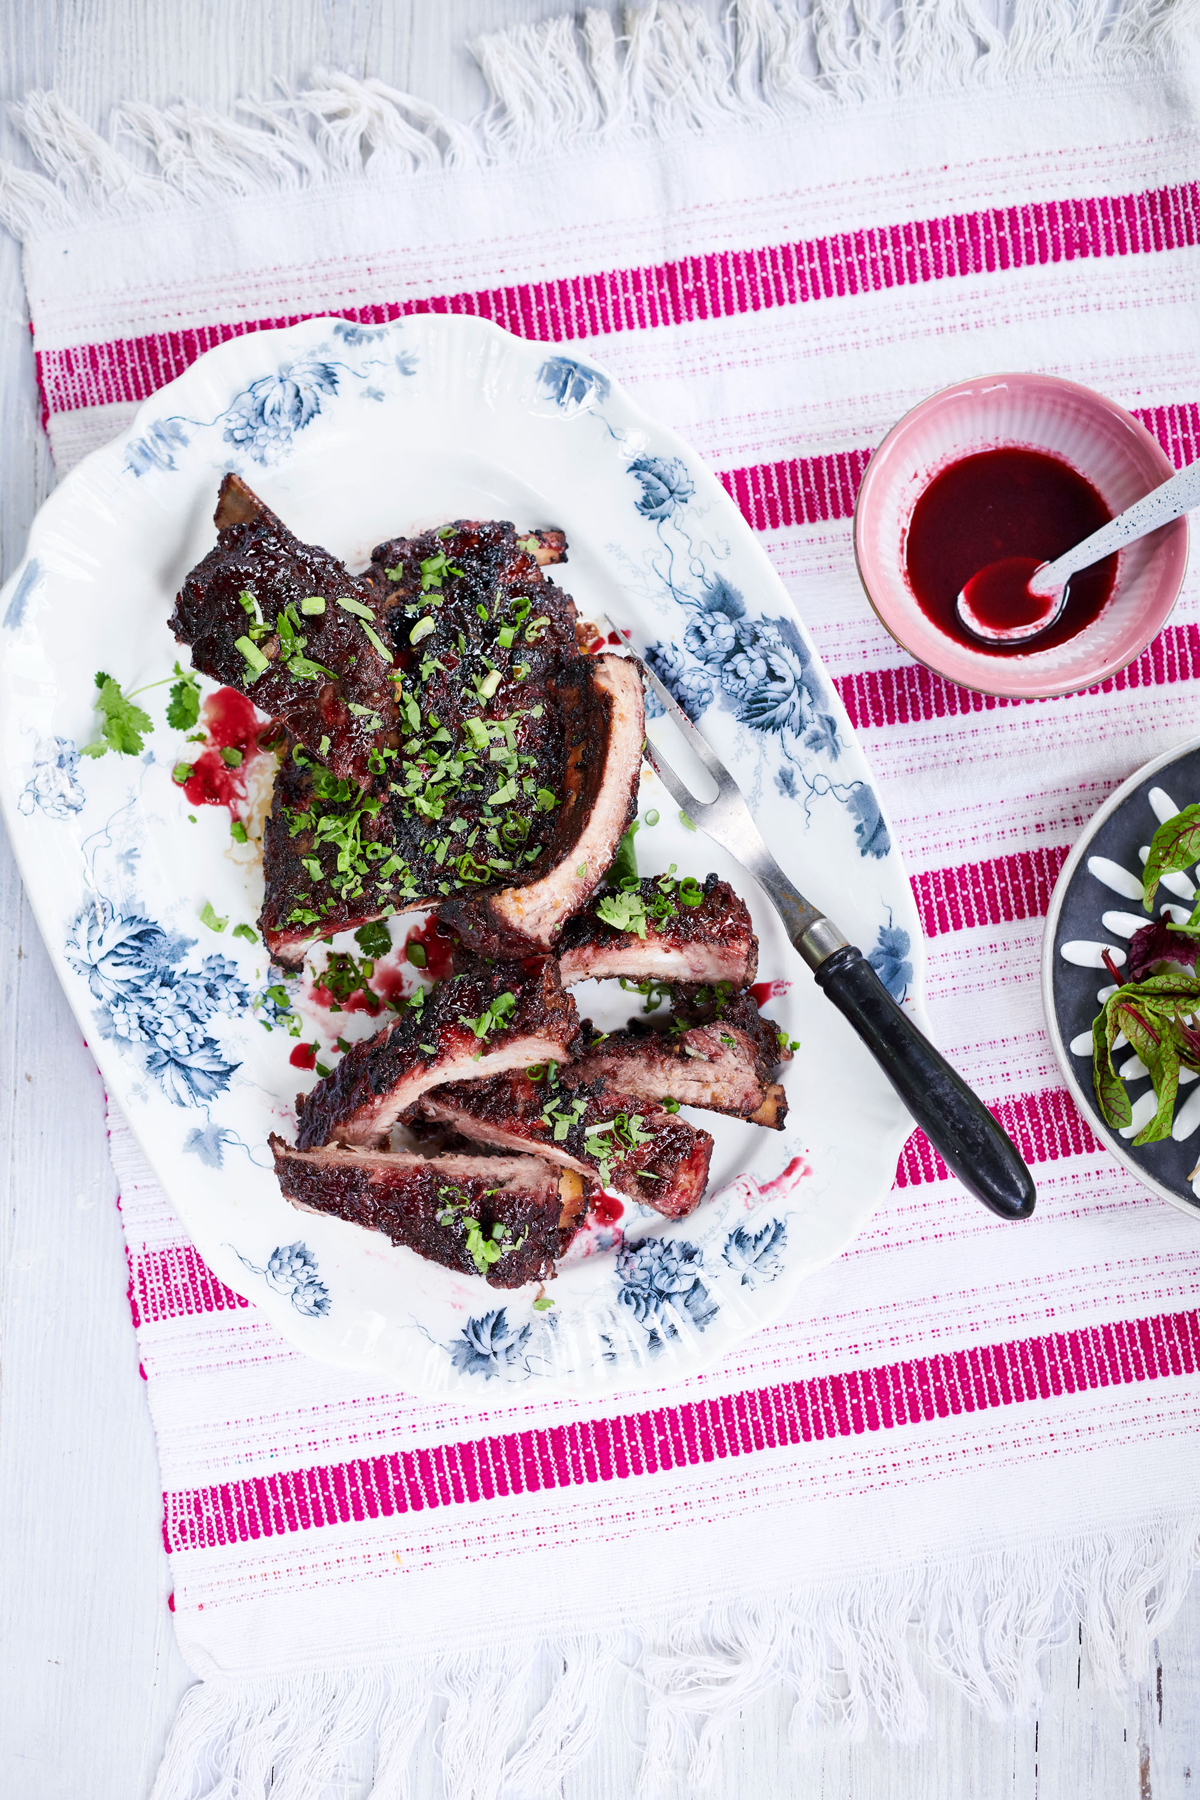 sour-cherry and five spice lacquered ribs garnished with scallions and cilantro